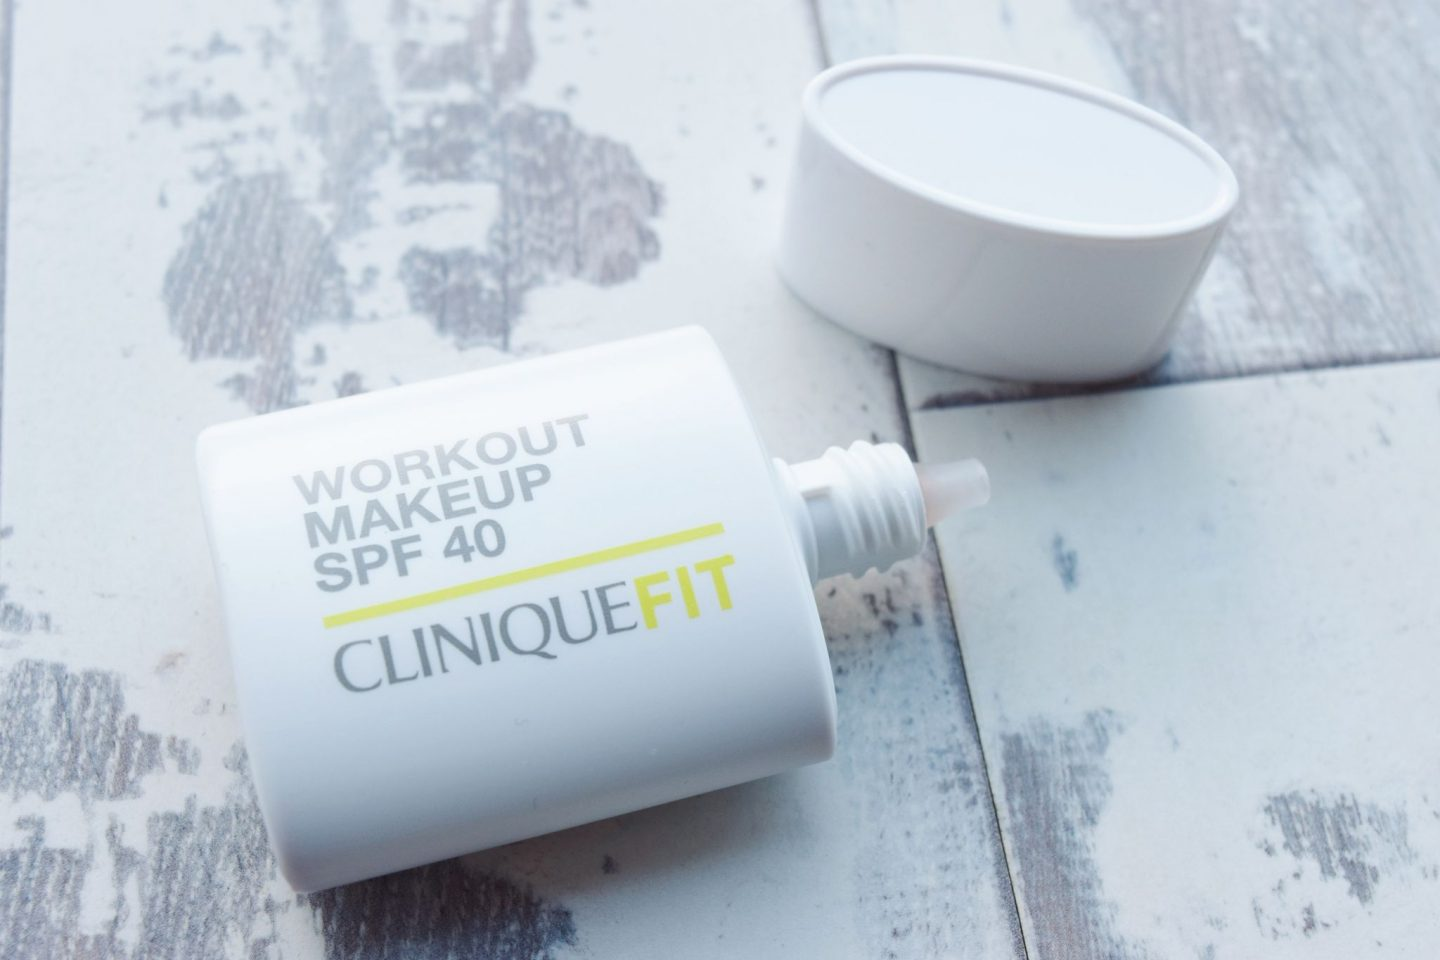 CliniqueFIT Workout Makeup SPF 40